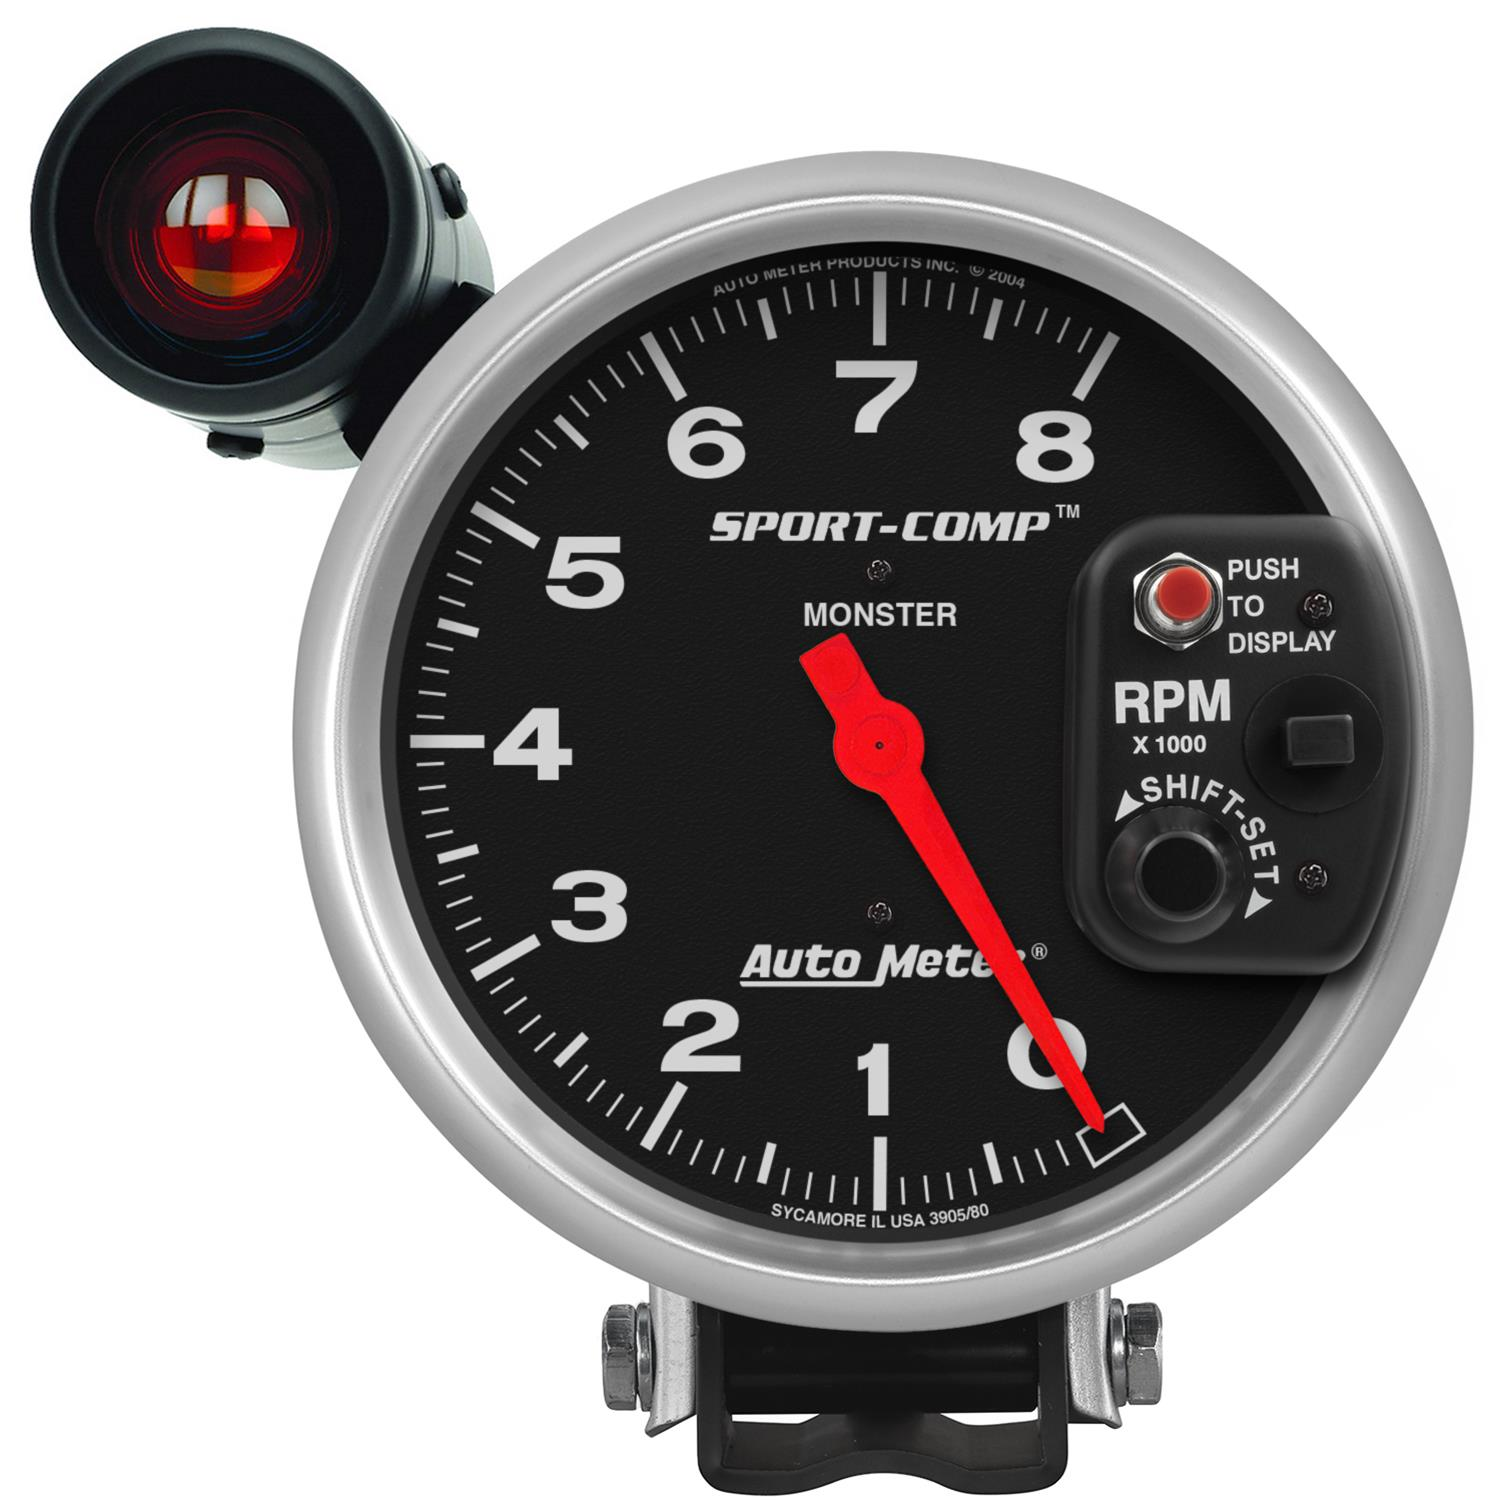 AutoMeter Sport-Comp Monster Shift-Lite Tachometers 3905